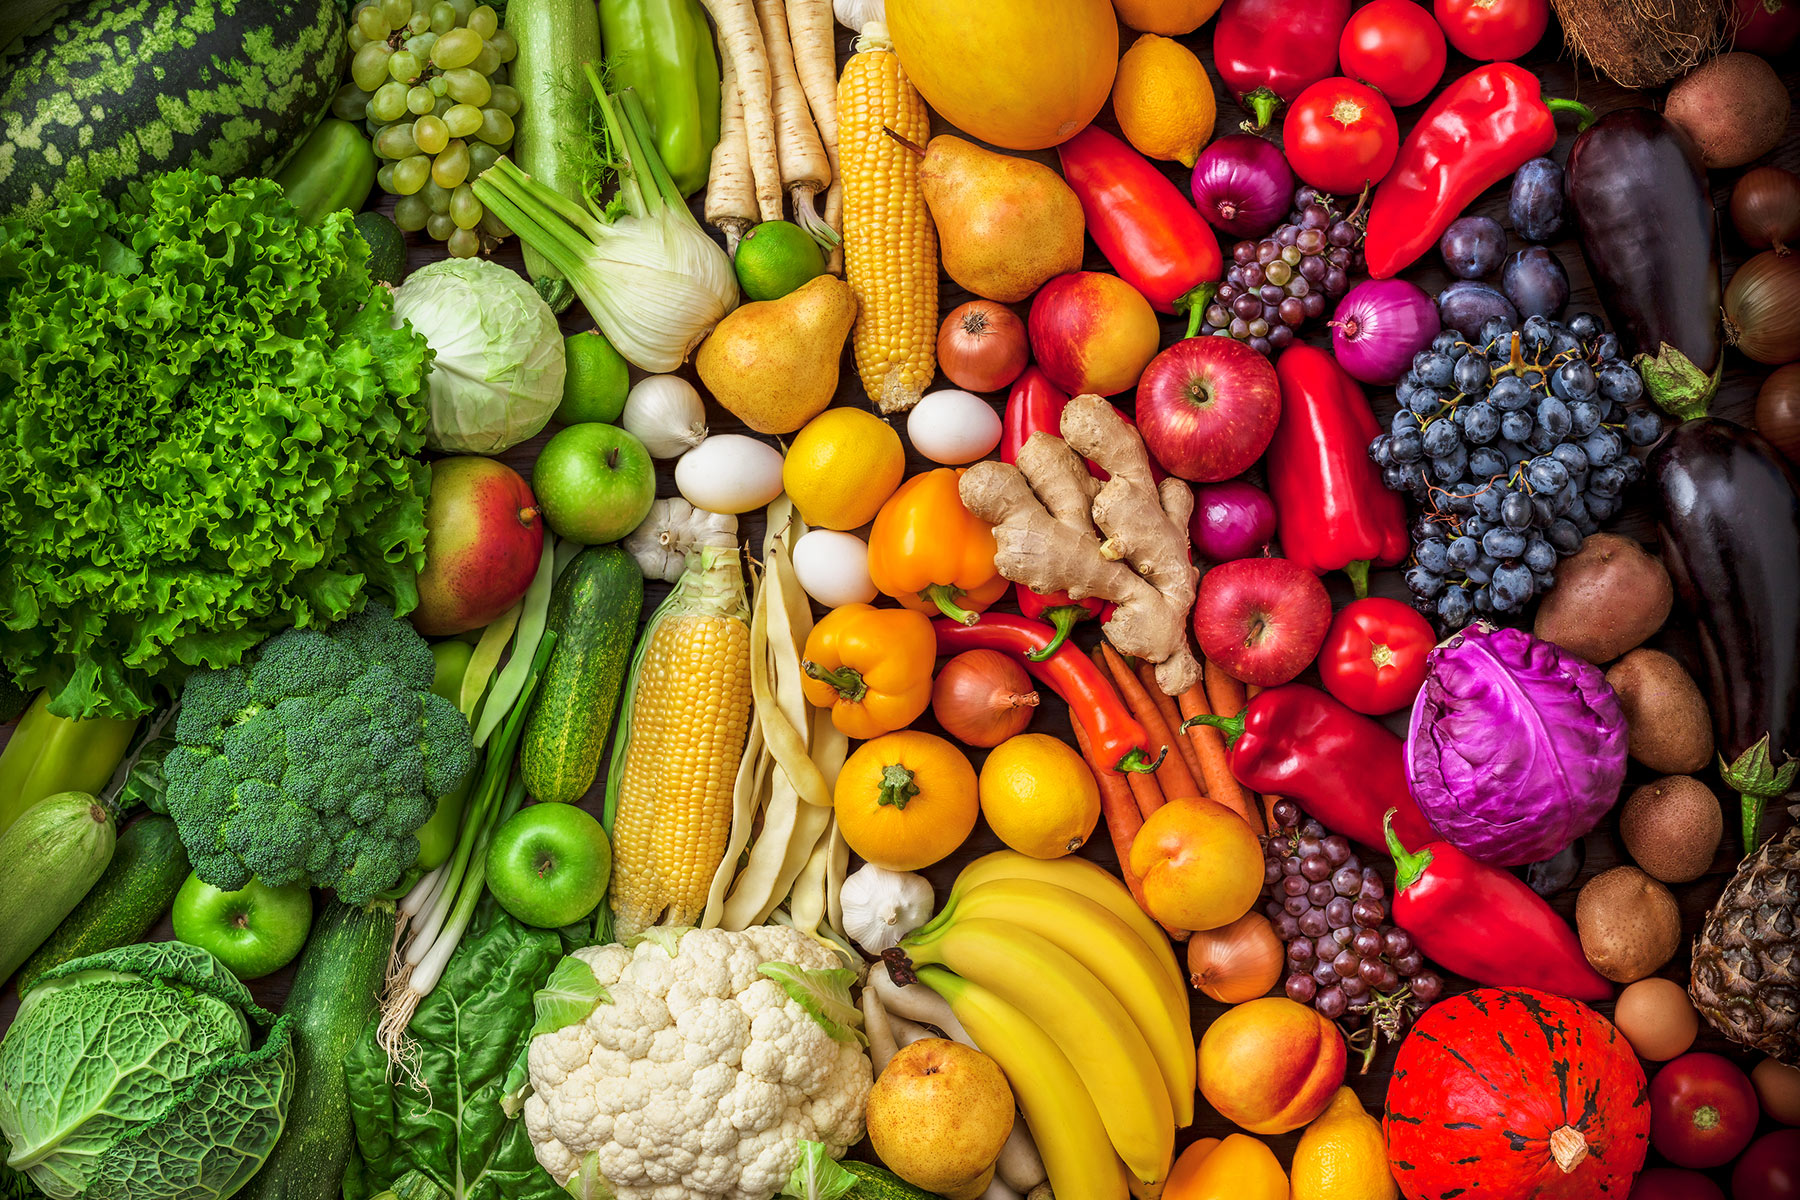 Heart disease food diet: Avoiding inflammation is simple. There are foods that cause inflammation, and curtailing on them improve health.